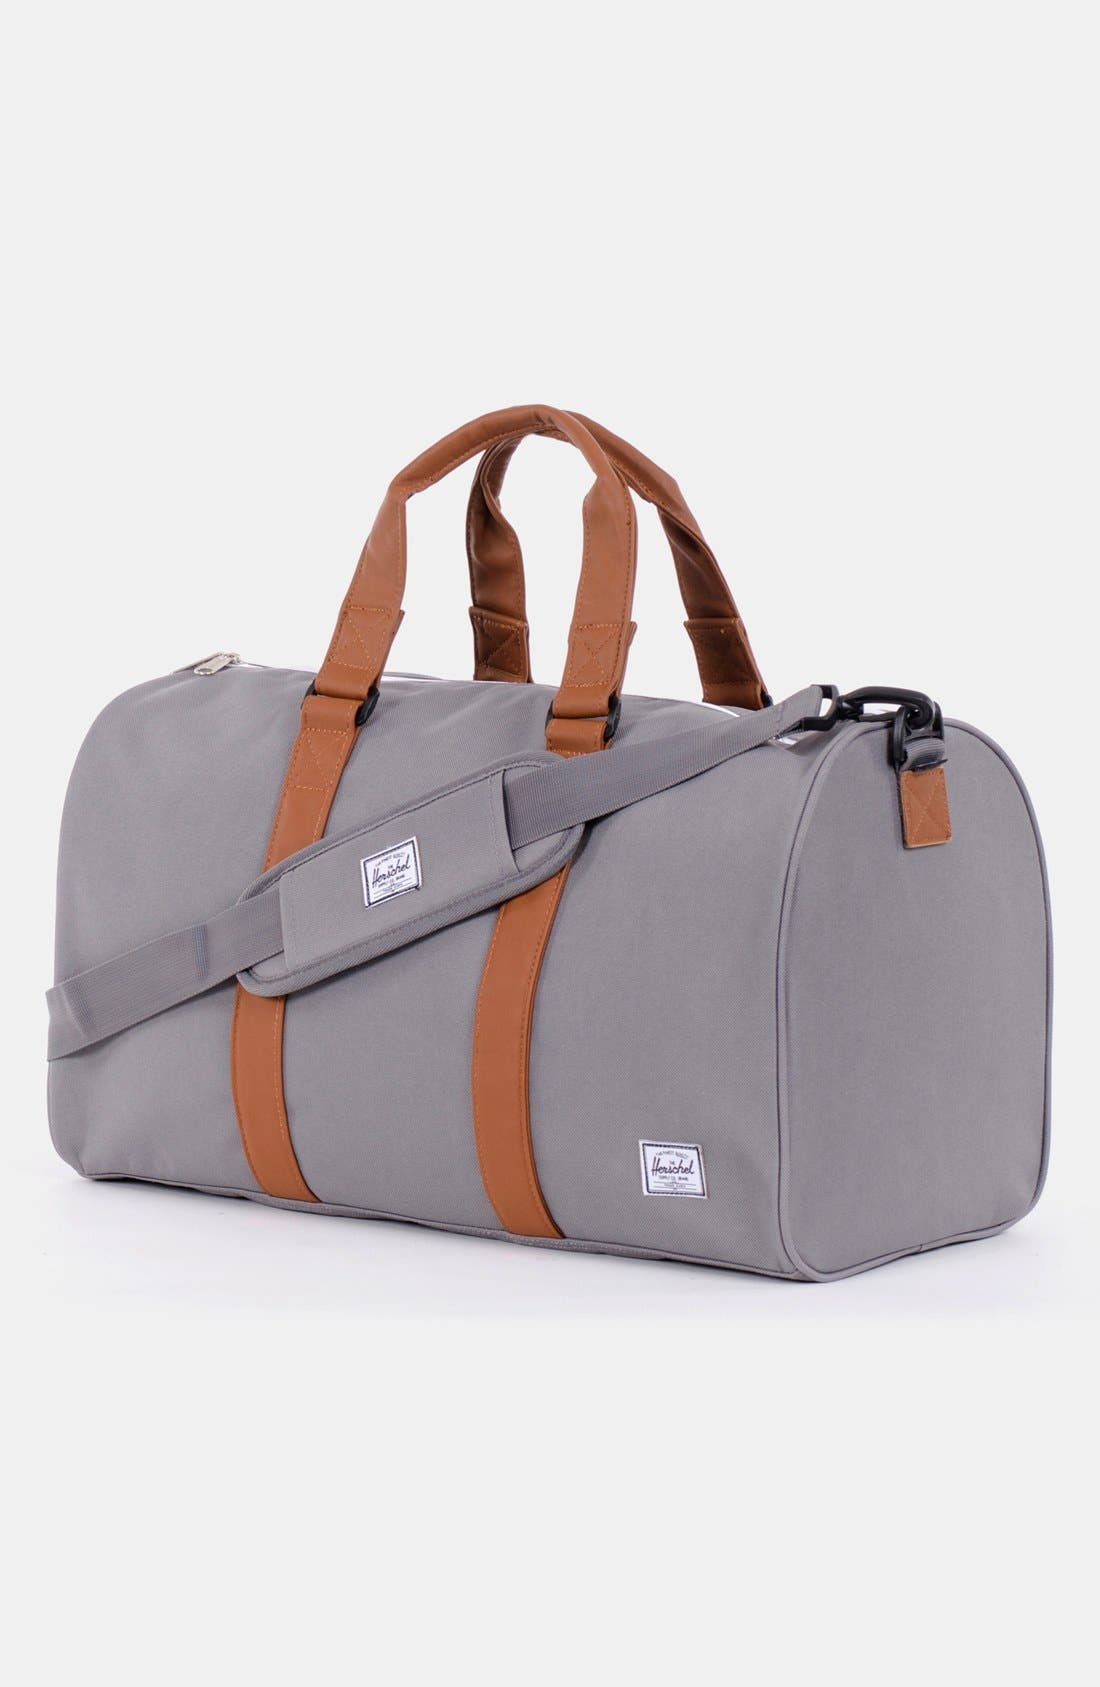 Main Image - Herschel Supply Co. 'Ravine' Gym Bag